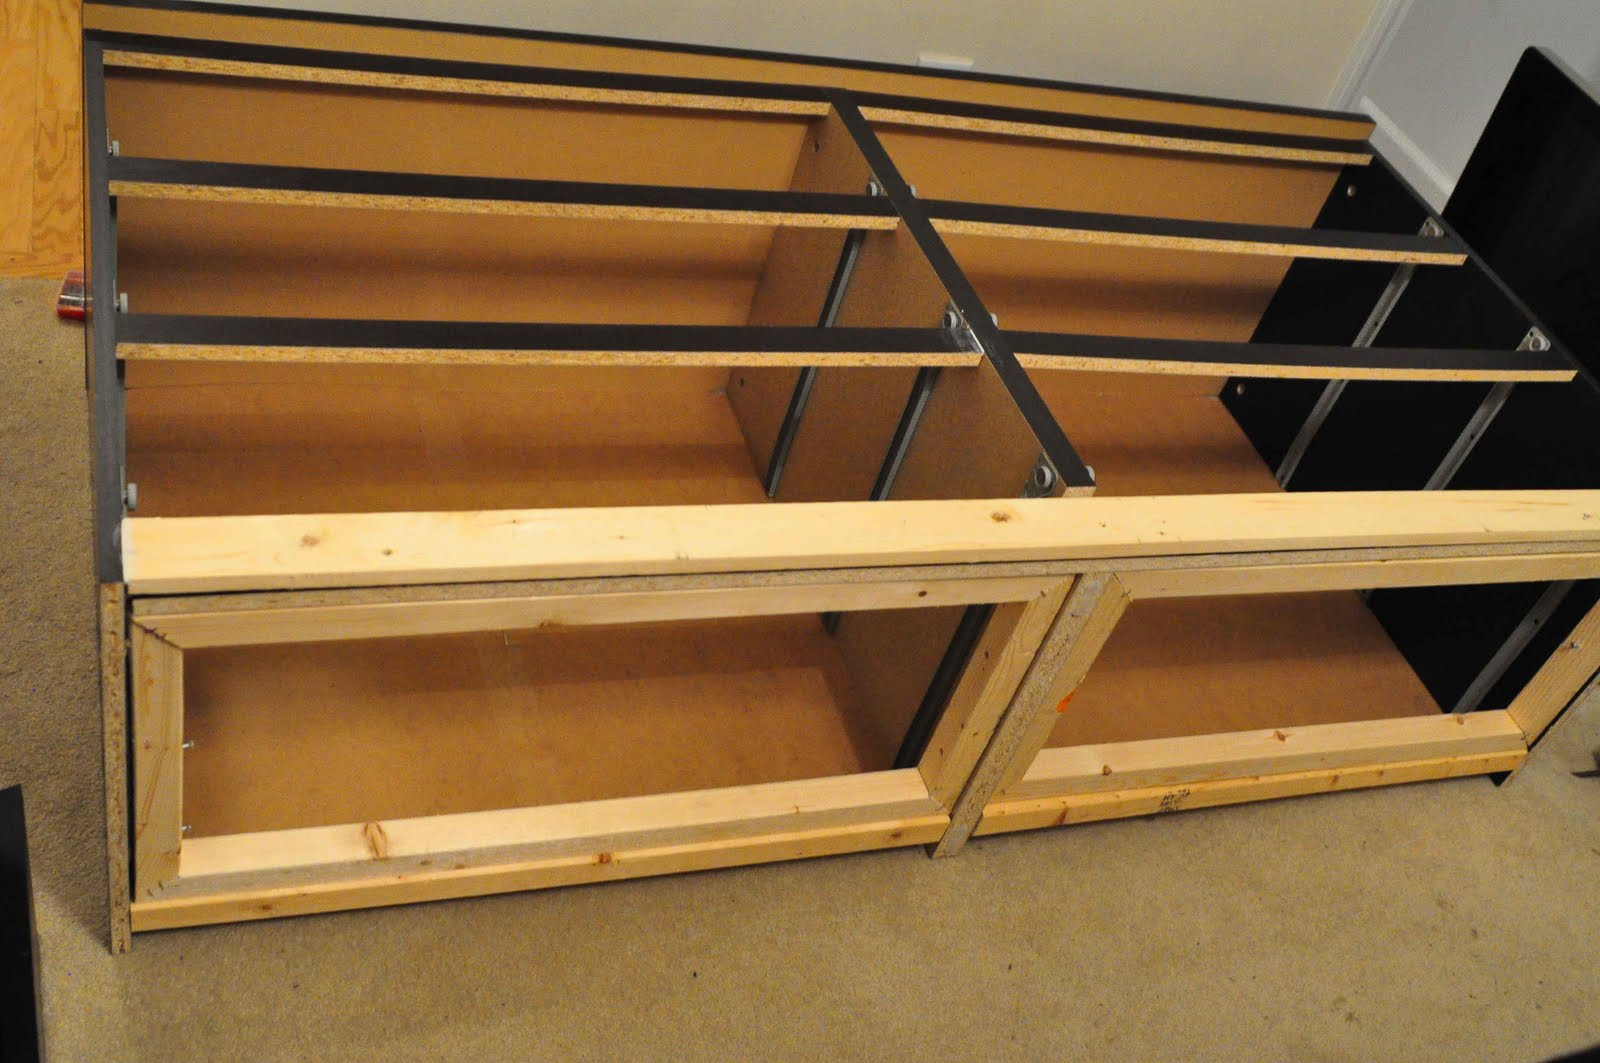 Make Frames For The Drawers I Just Used A Miter Box To Make The 45. Full resolution  portrait, nominally Width 1600 Height 1063 pixels, portrait with #C24902.